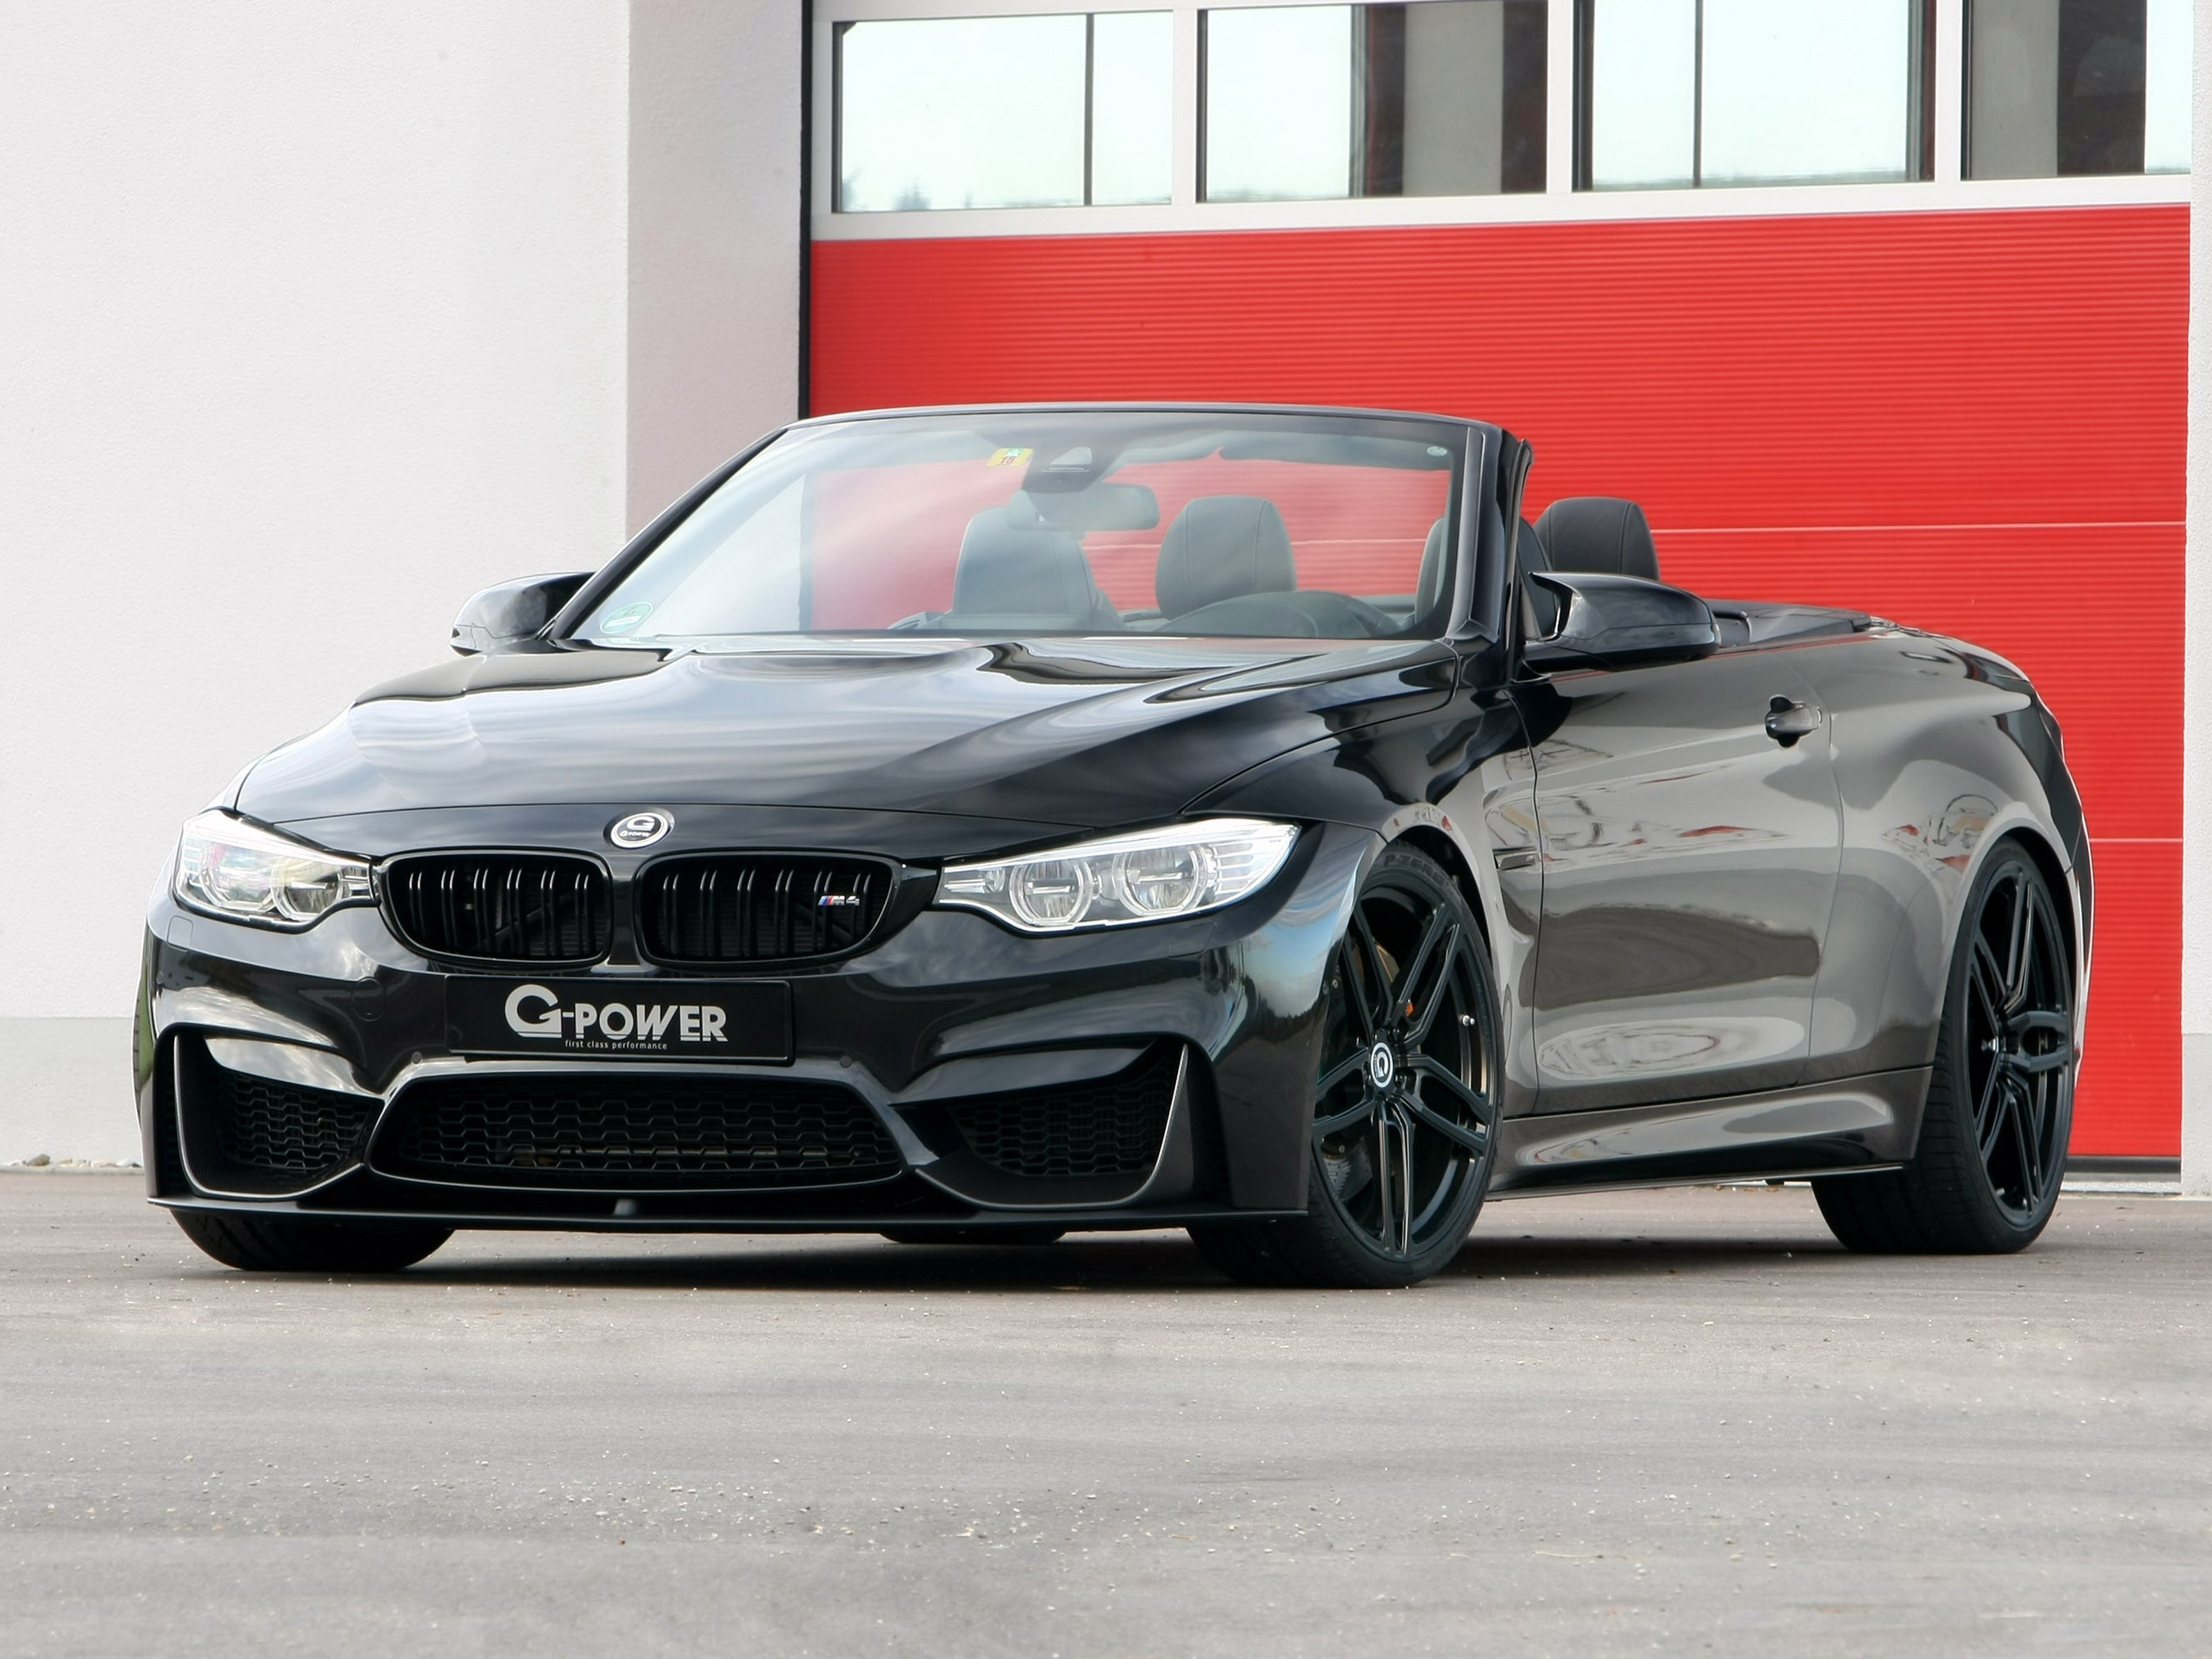 2016 G-power - Bmw M4 Cabrio F83